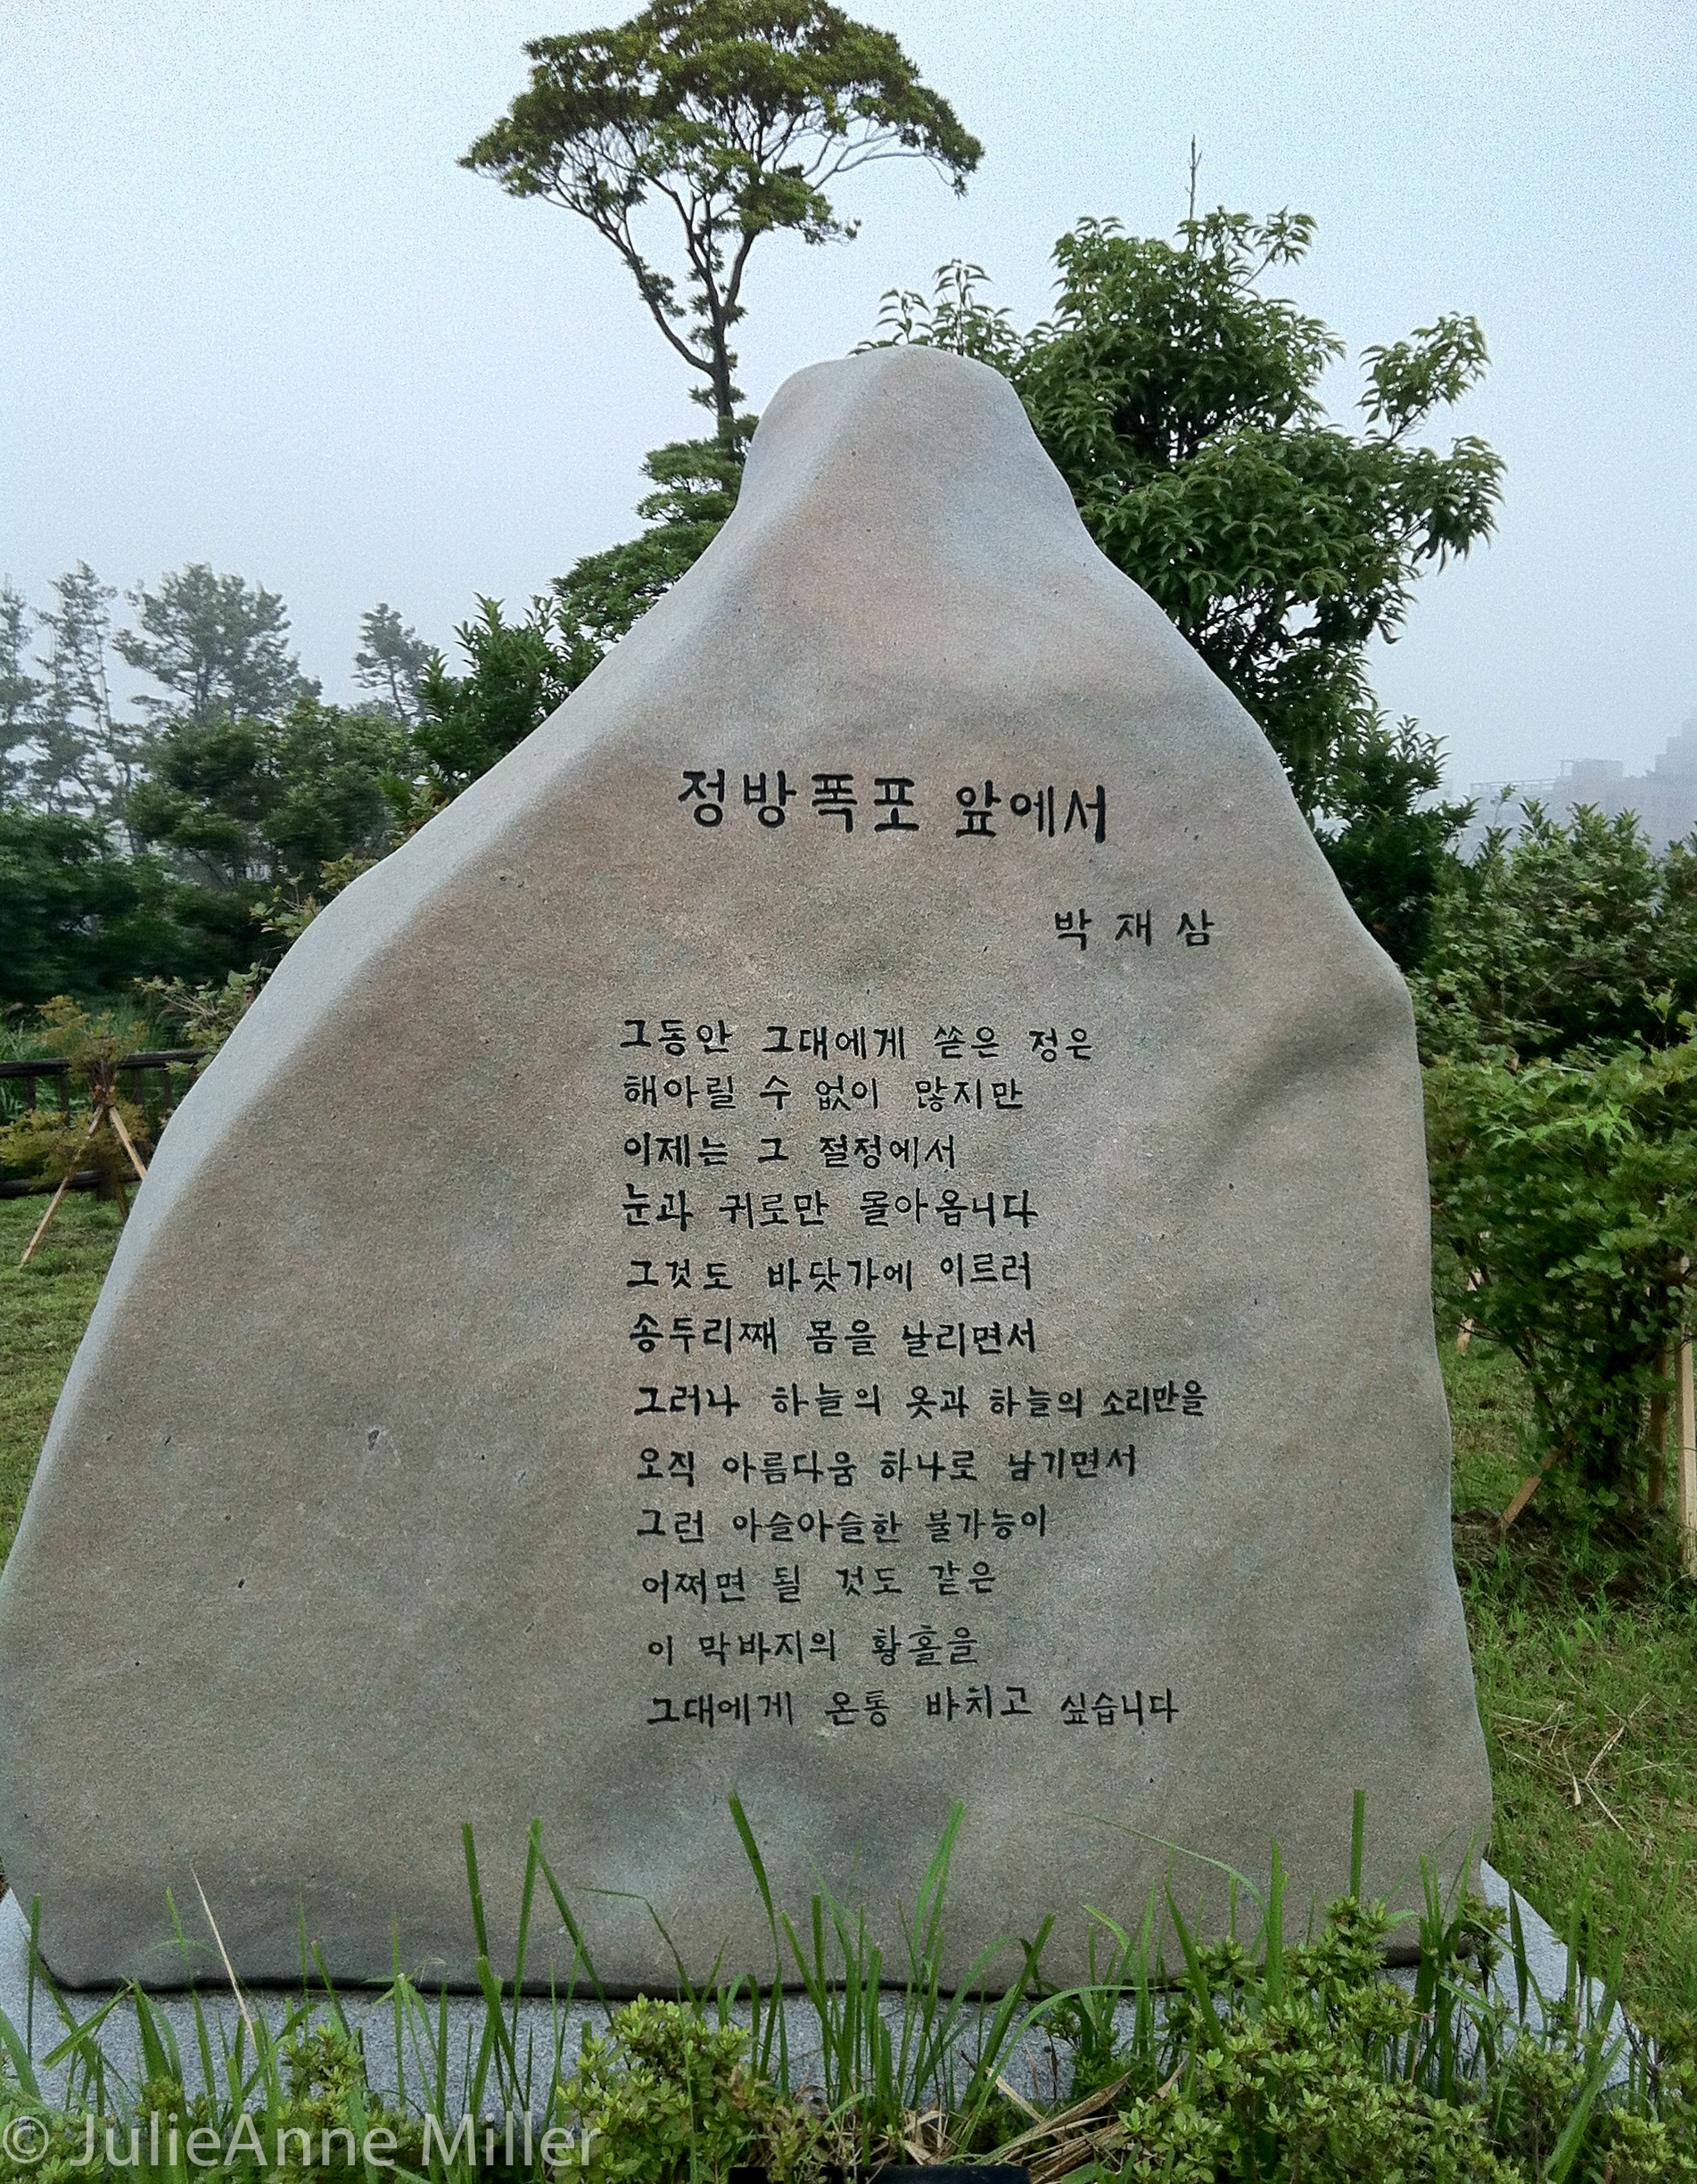 Chilsimni Poetry Park, 칠십리 공원, Jeju